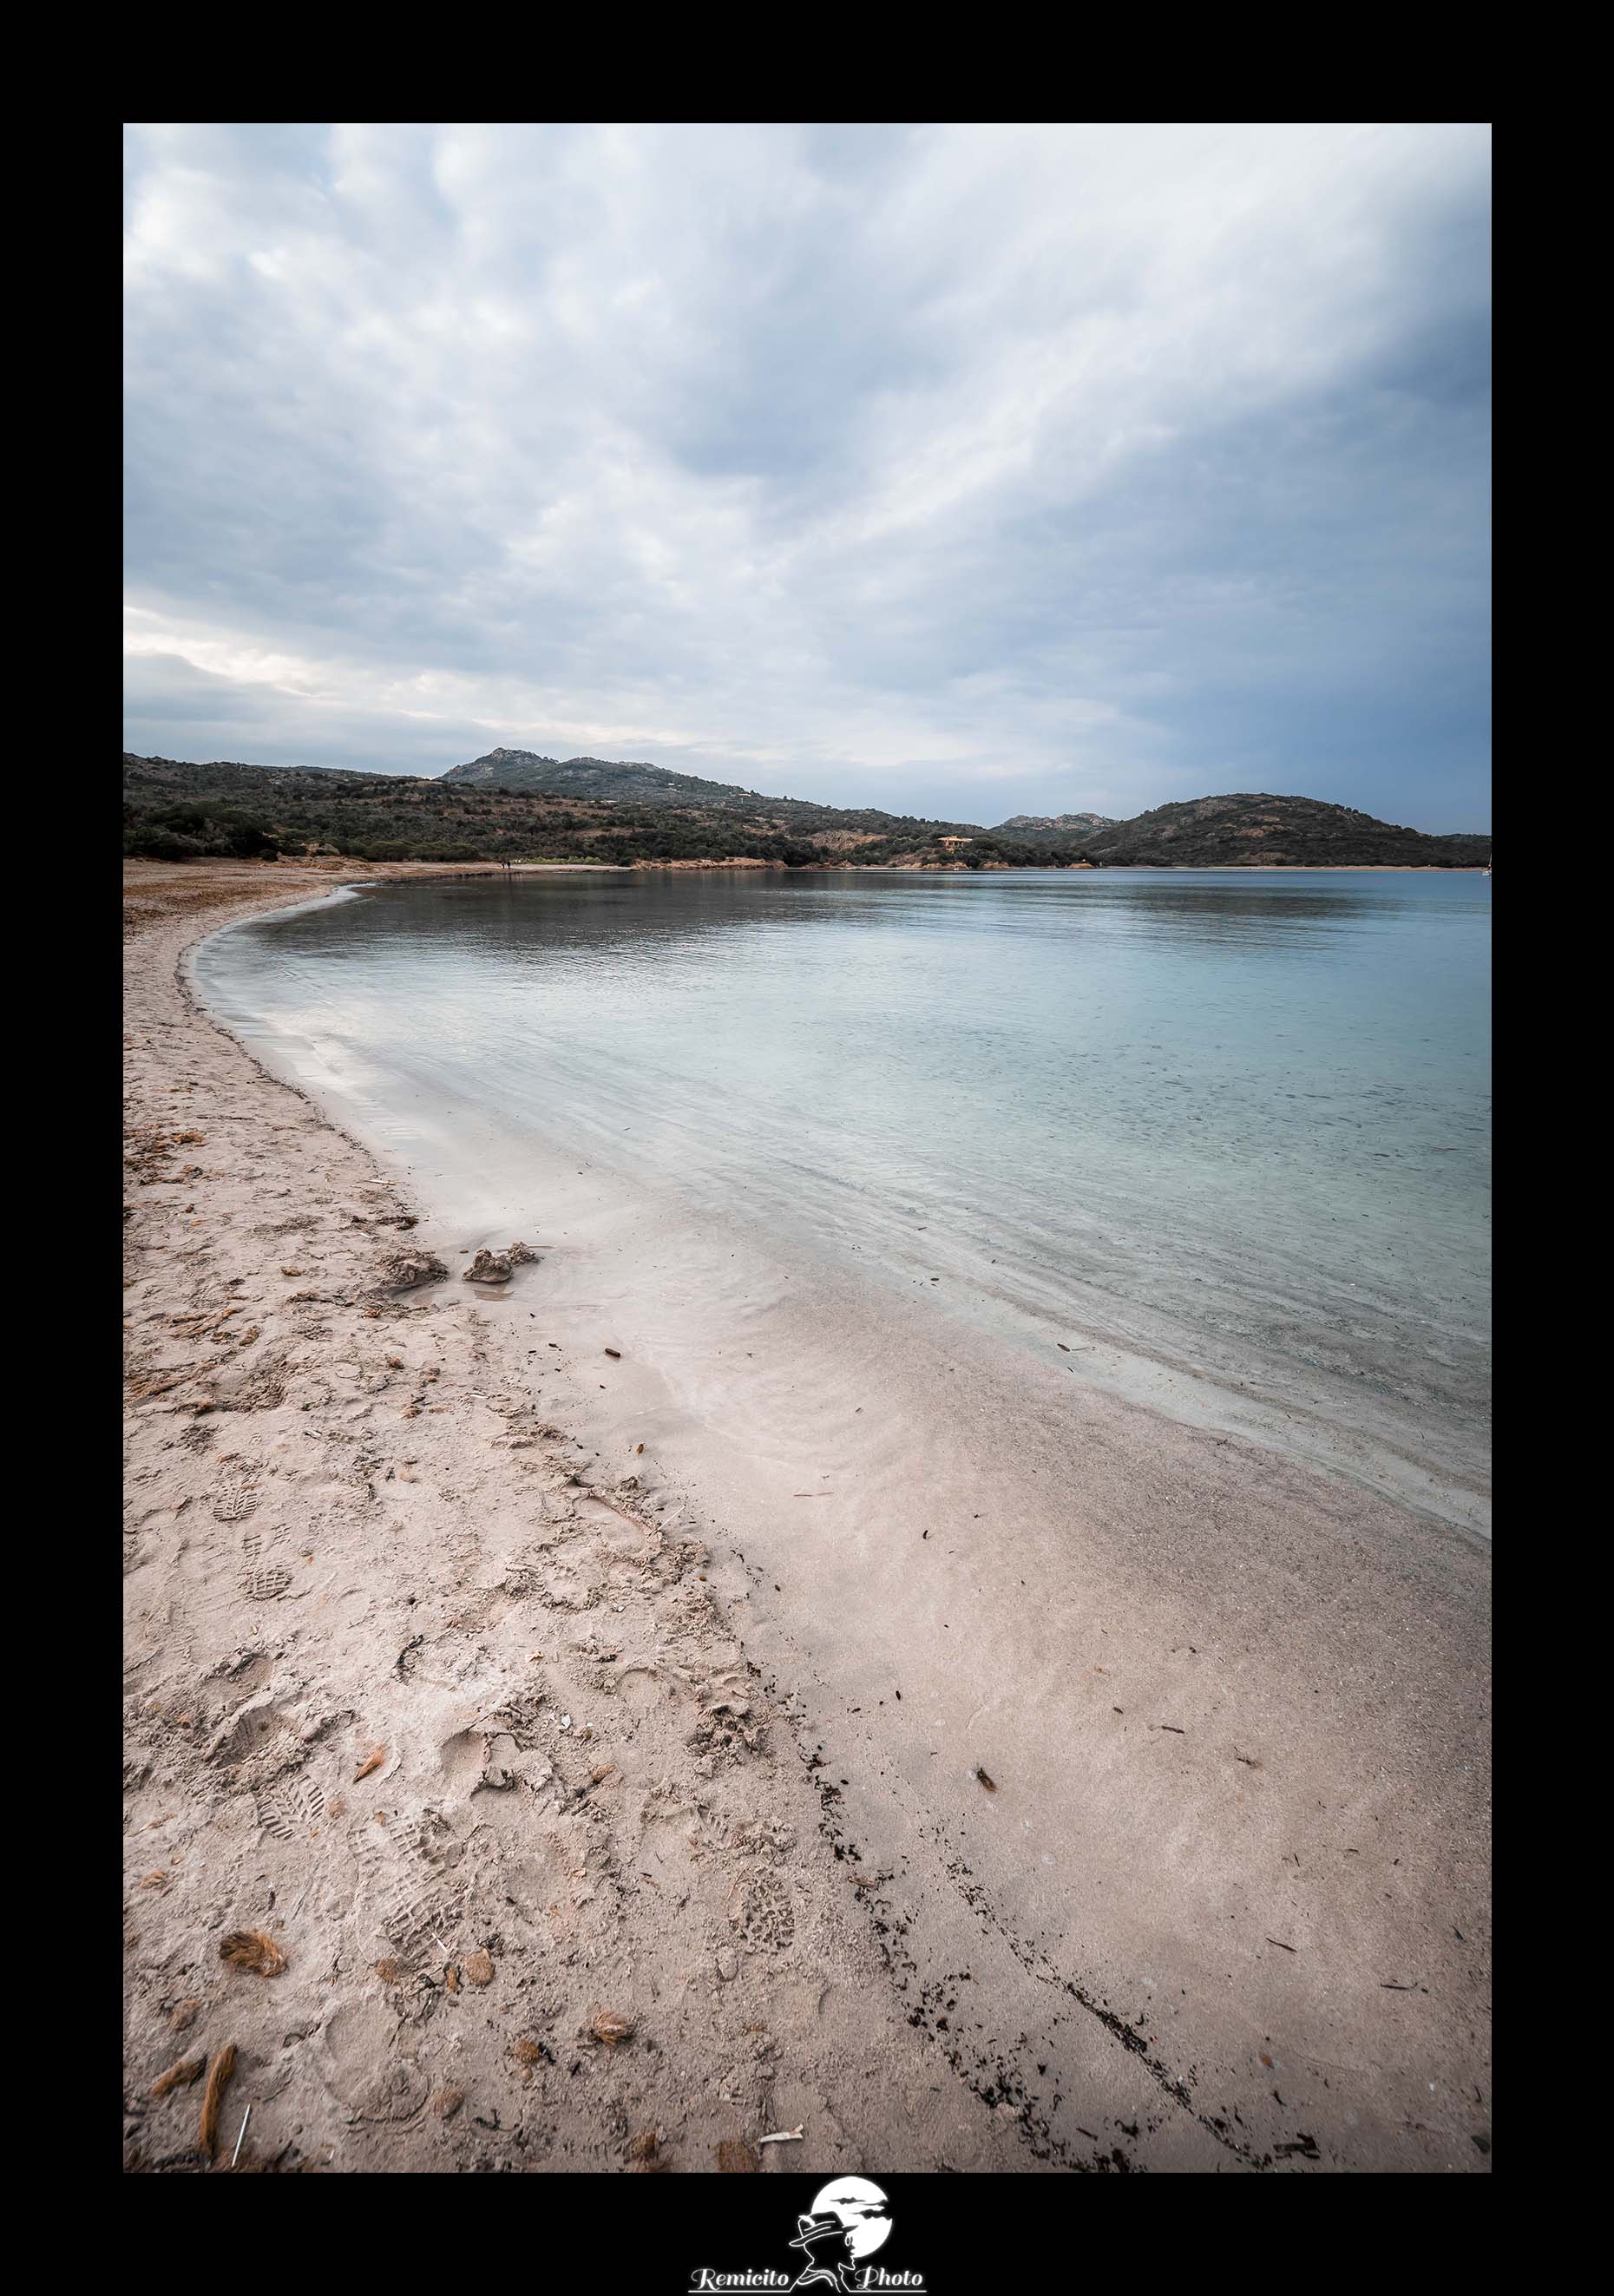 remicito photo, image du jour, photo du jour, photo of the day, photo plage corse, photo coucher de soleil corse, belle photo, meilleur photographe français, best french photographer, idée cadeau, idée déco, tirage photo qualité, seascape